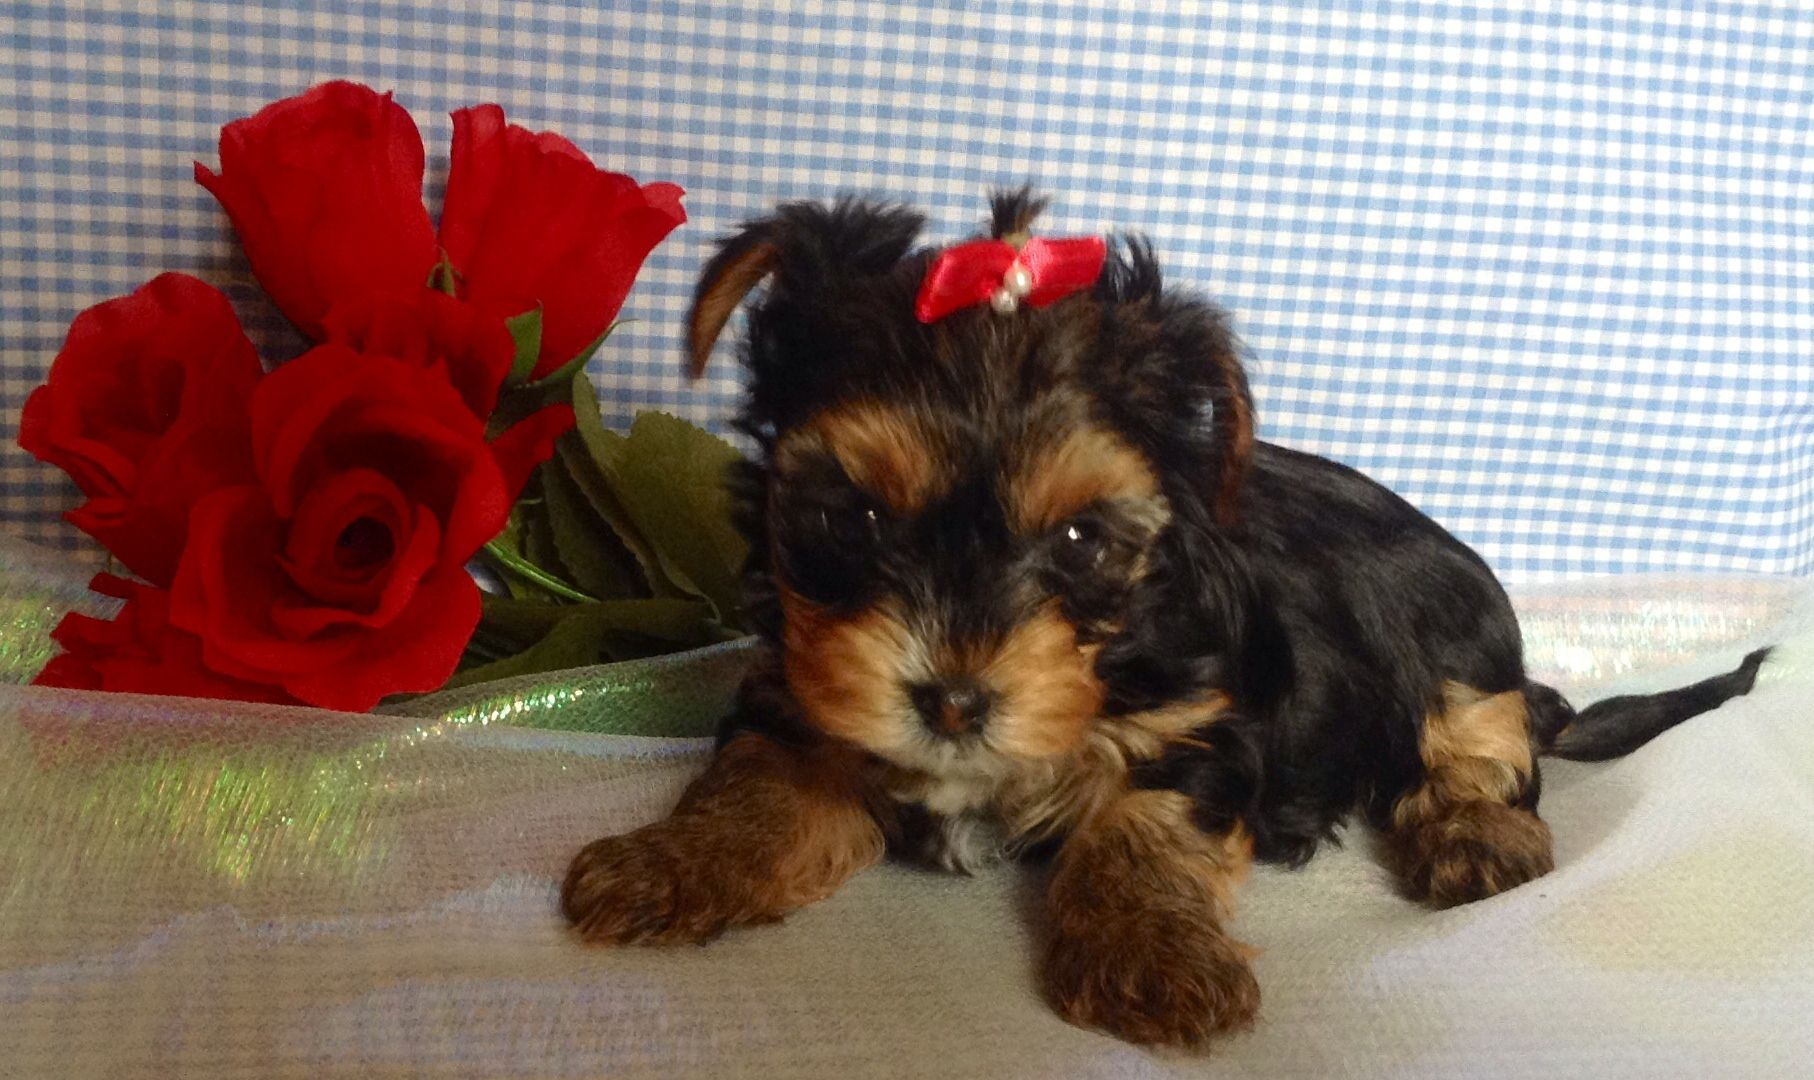 4 Yorkshire Terrier Puppies For Sale For 500 Go To Chicagoyorkie Wix Com Chicagoyorkies Have Any Questions Com Yorkshire Terrier Puppies Dog Breeds Terrier